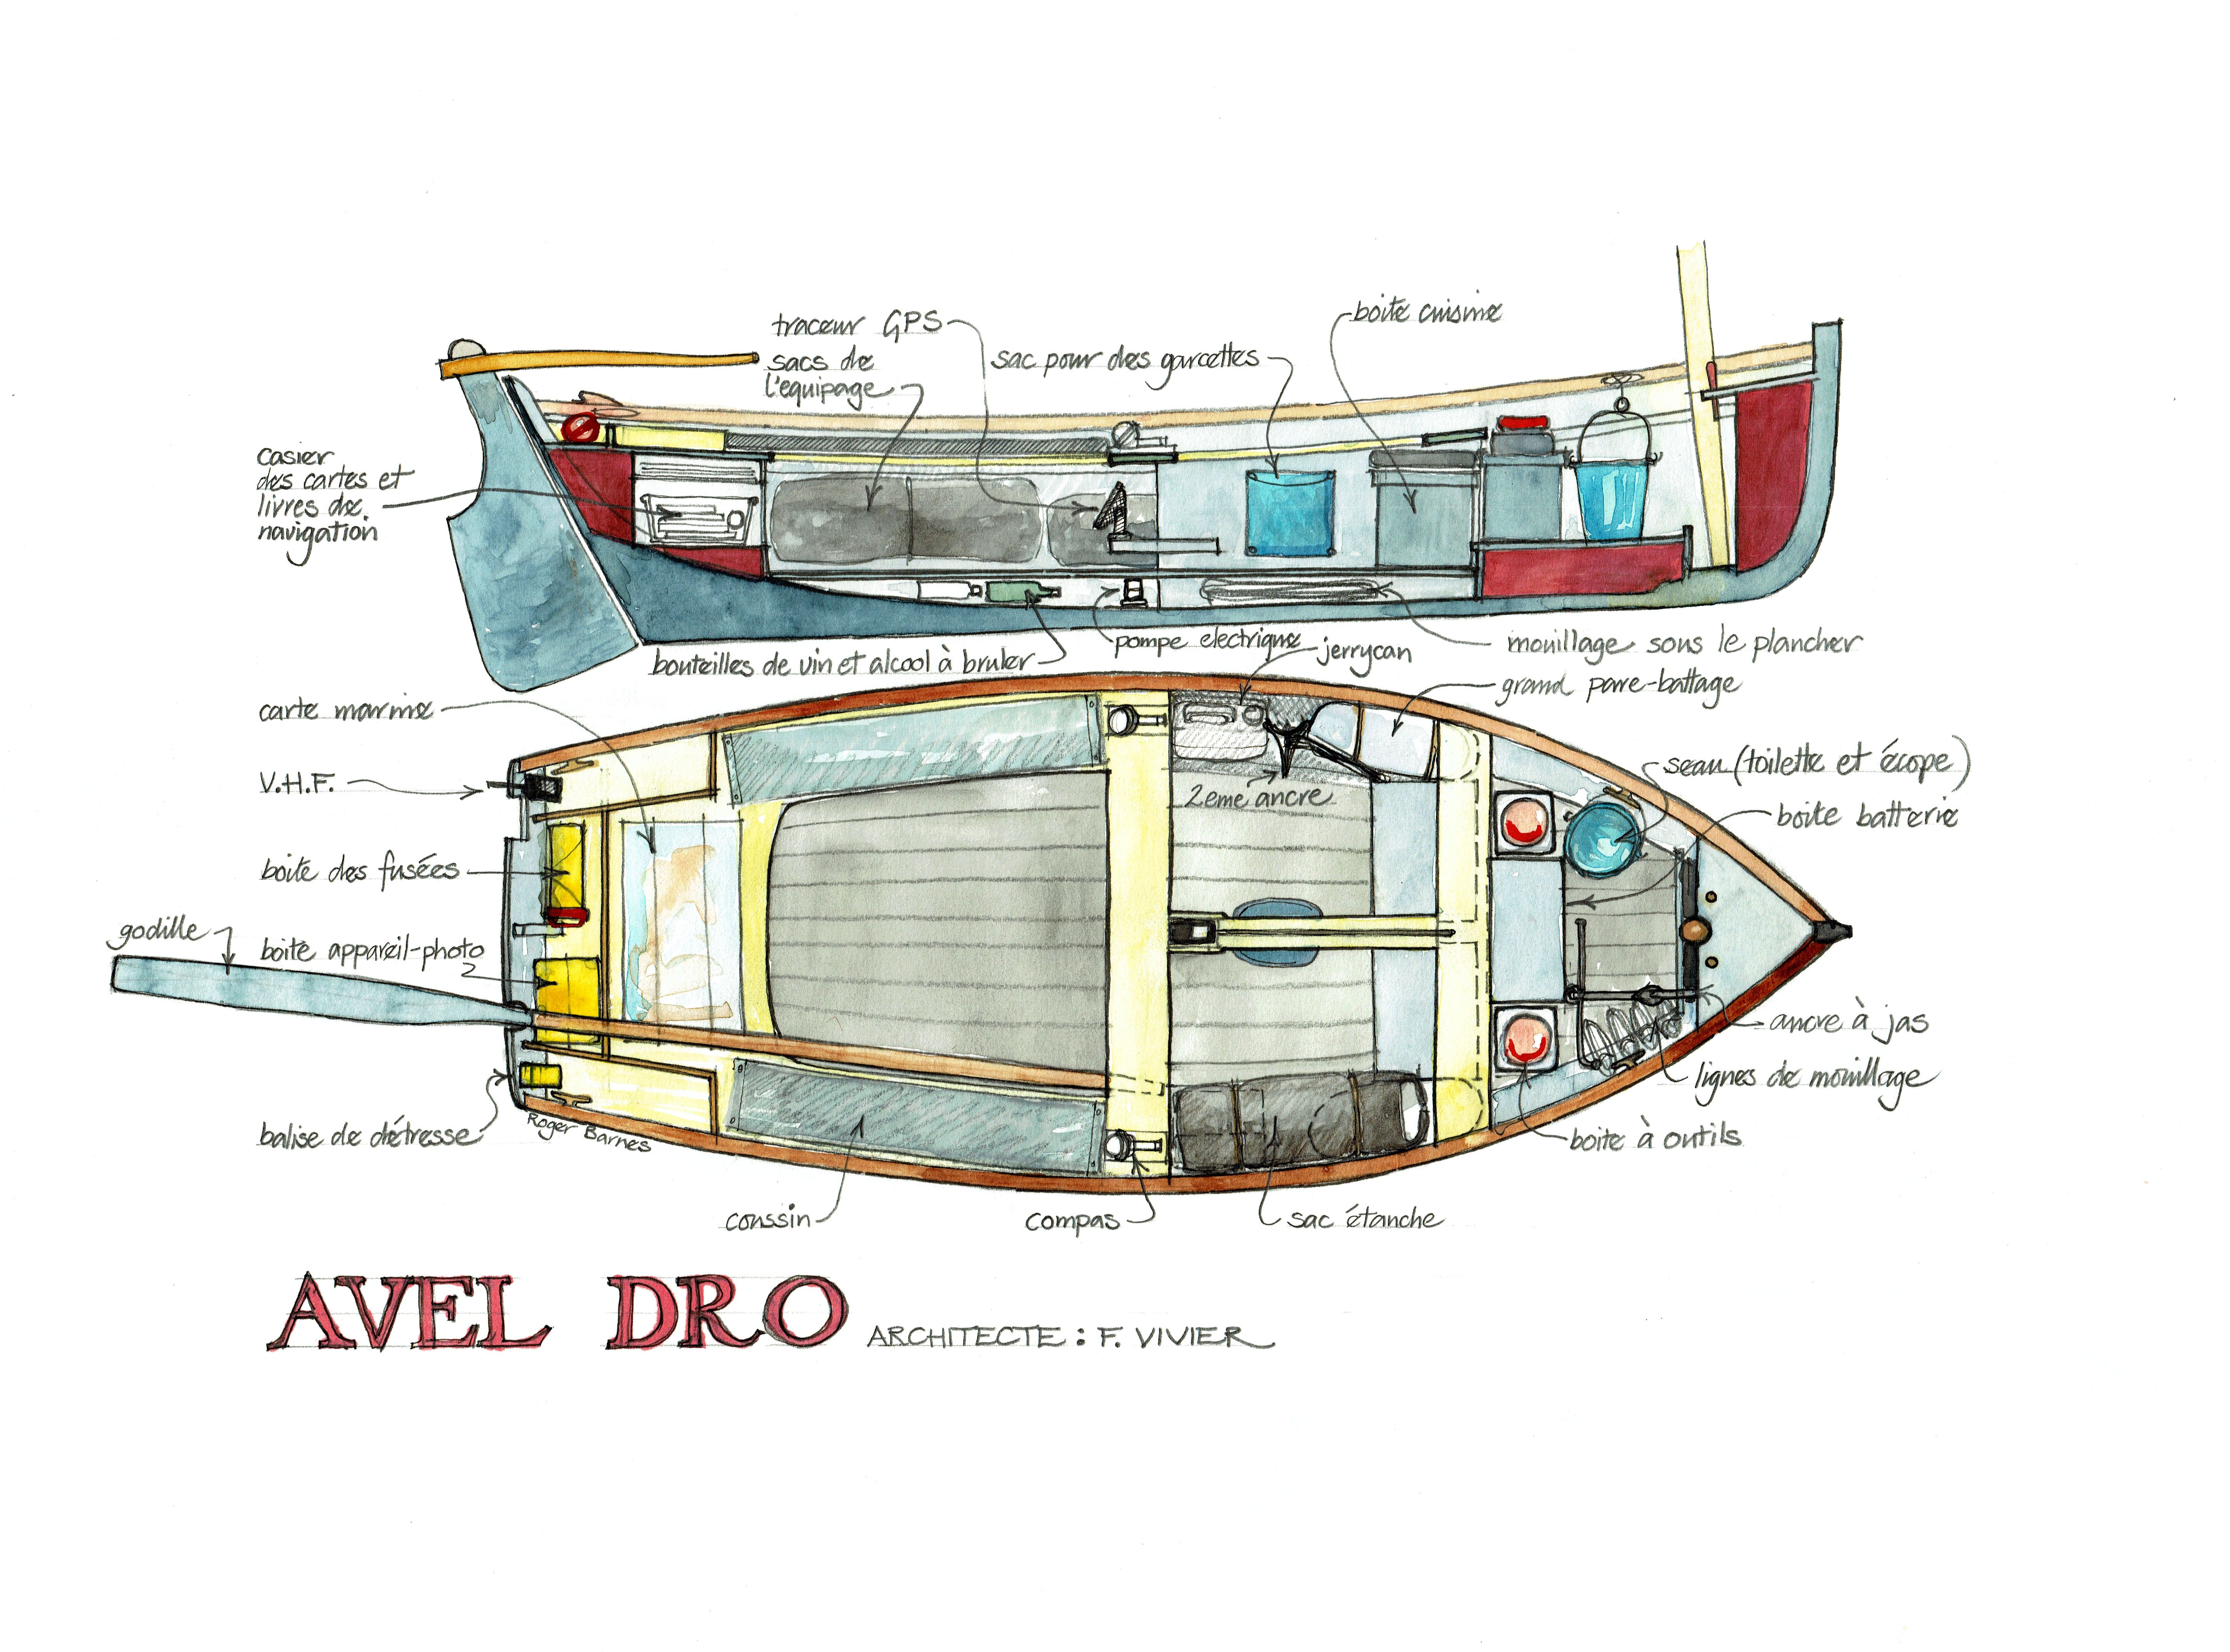 Le Casier À Bouteilles Le Havre plan and section of avel dro, showing stowage of cruising